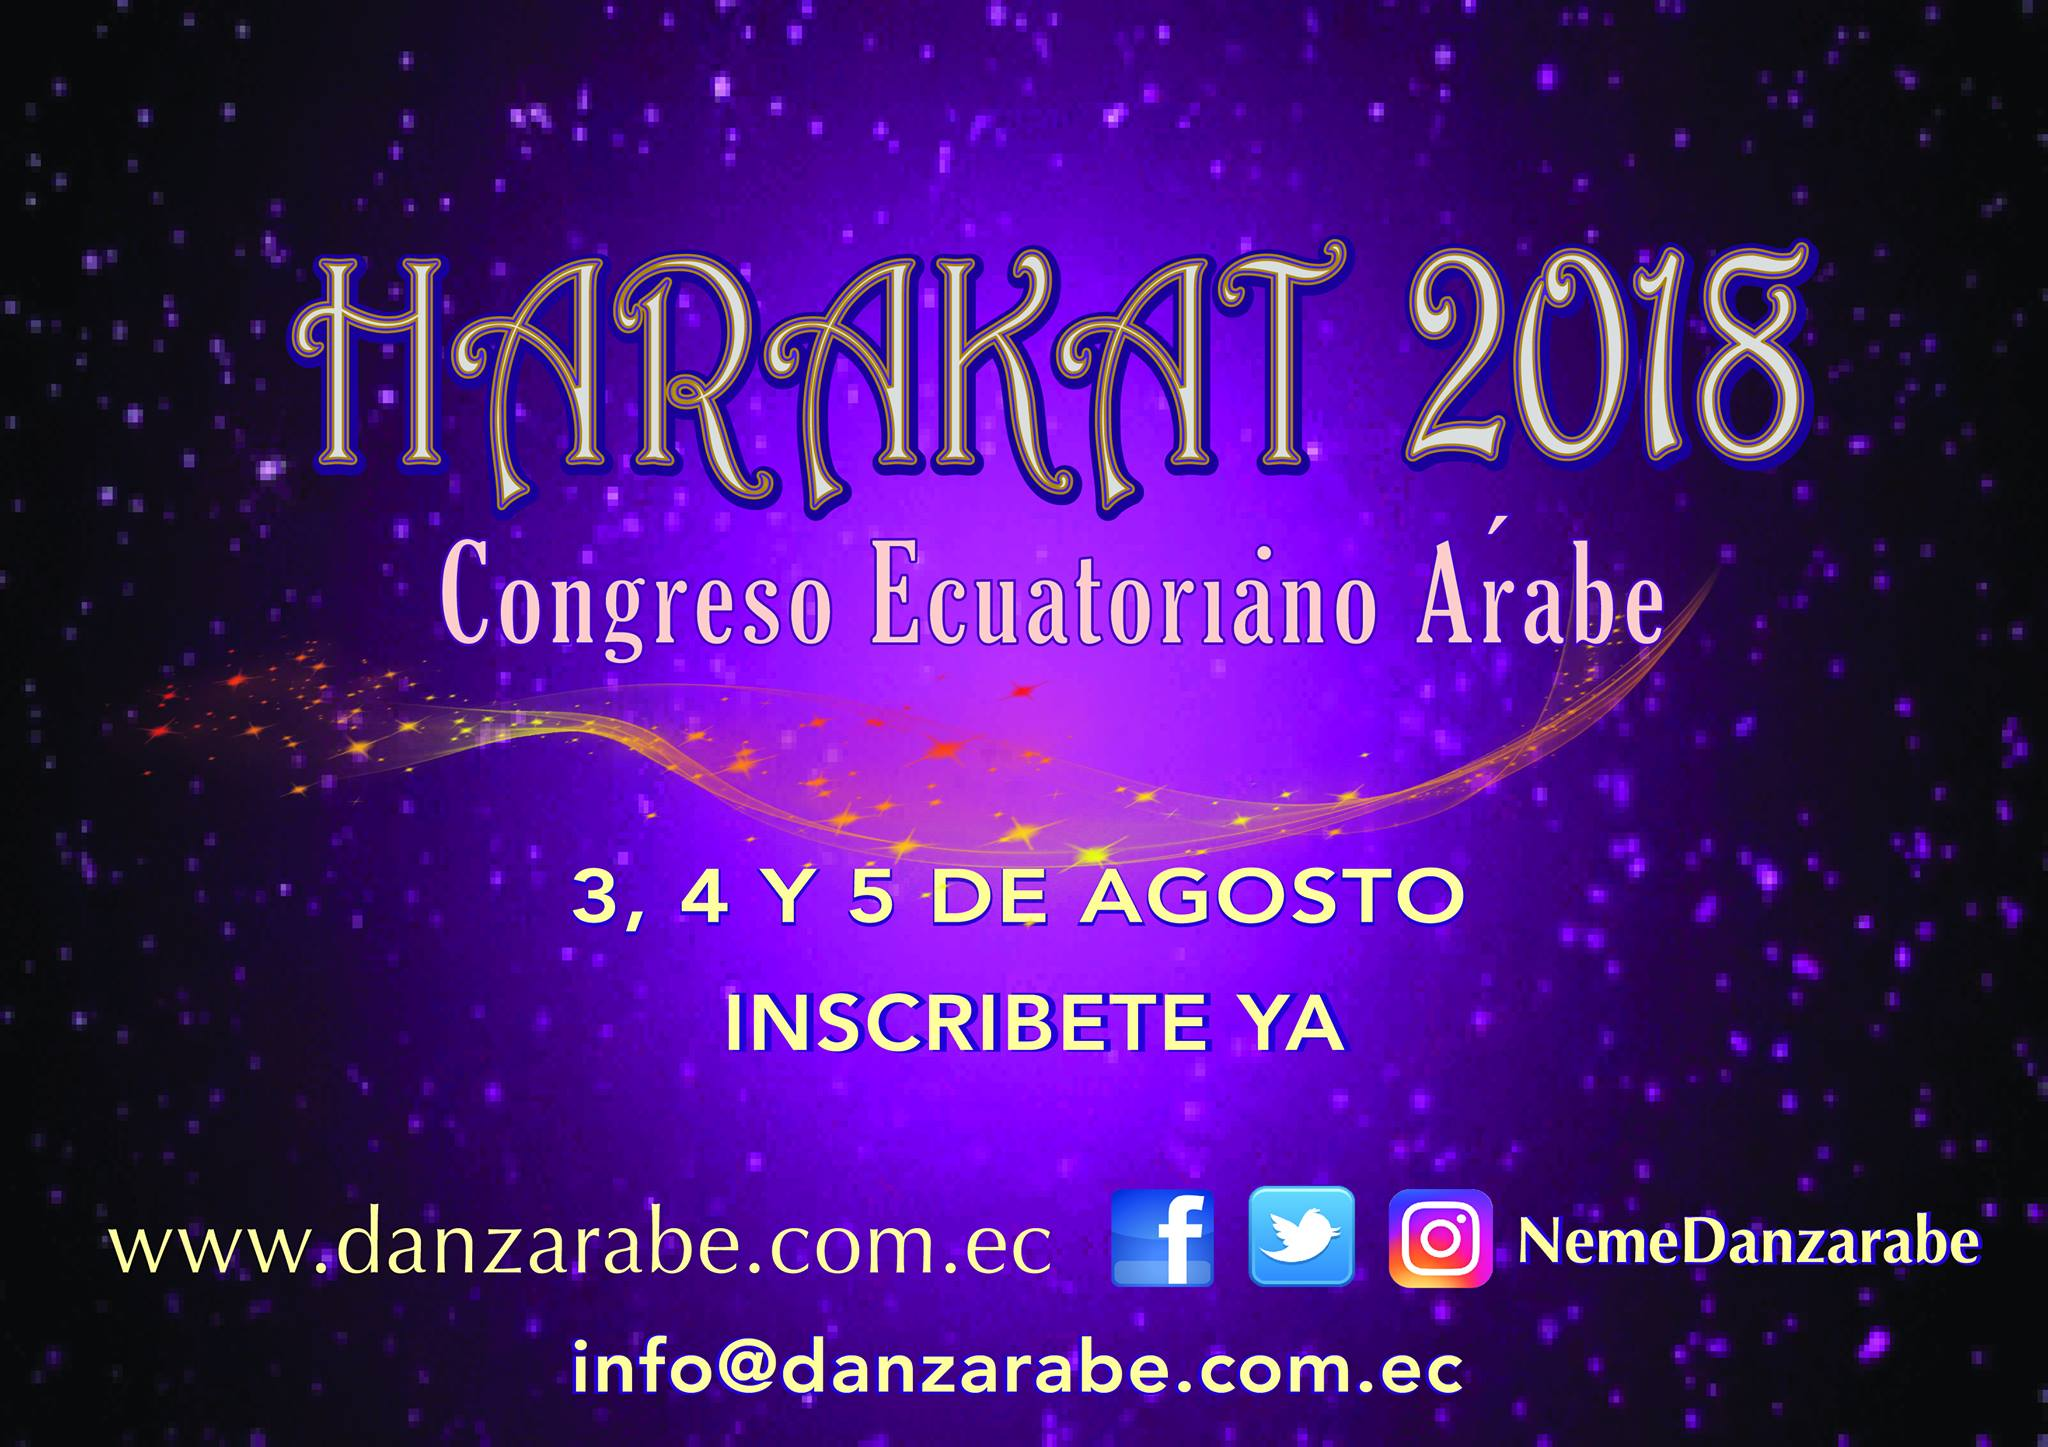 Belly-dance-Aziza-ecuador-Harakat-2018